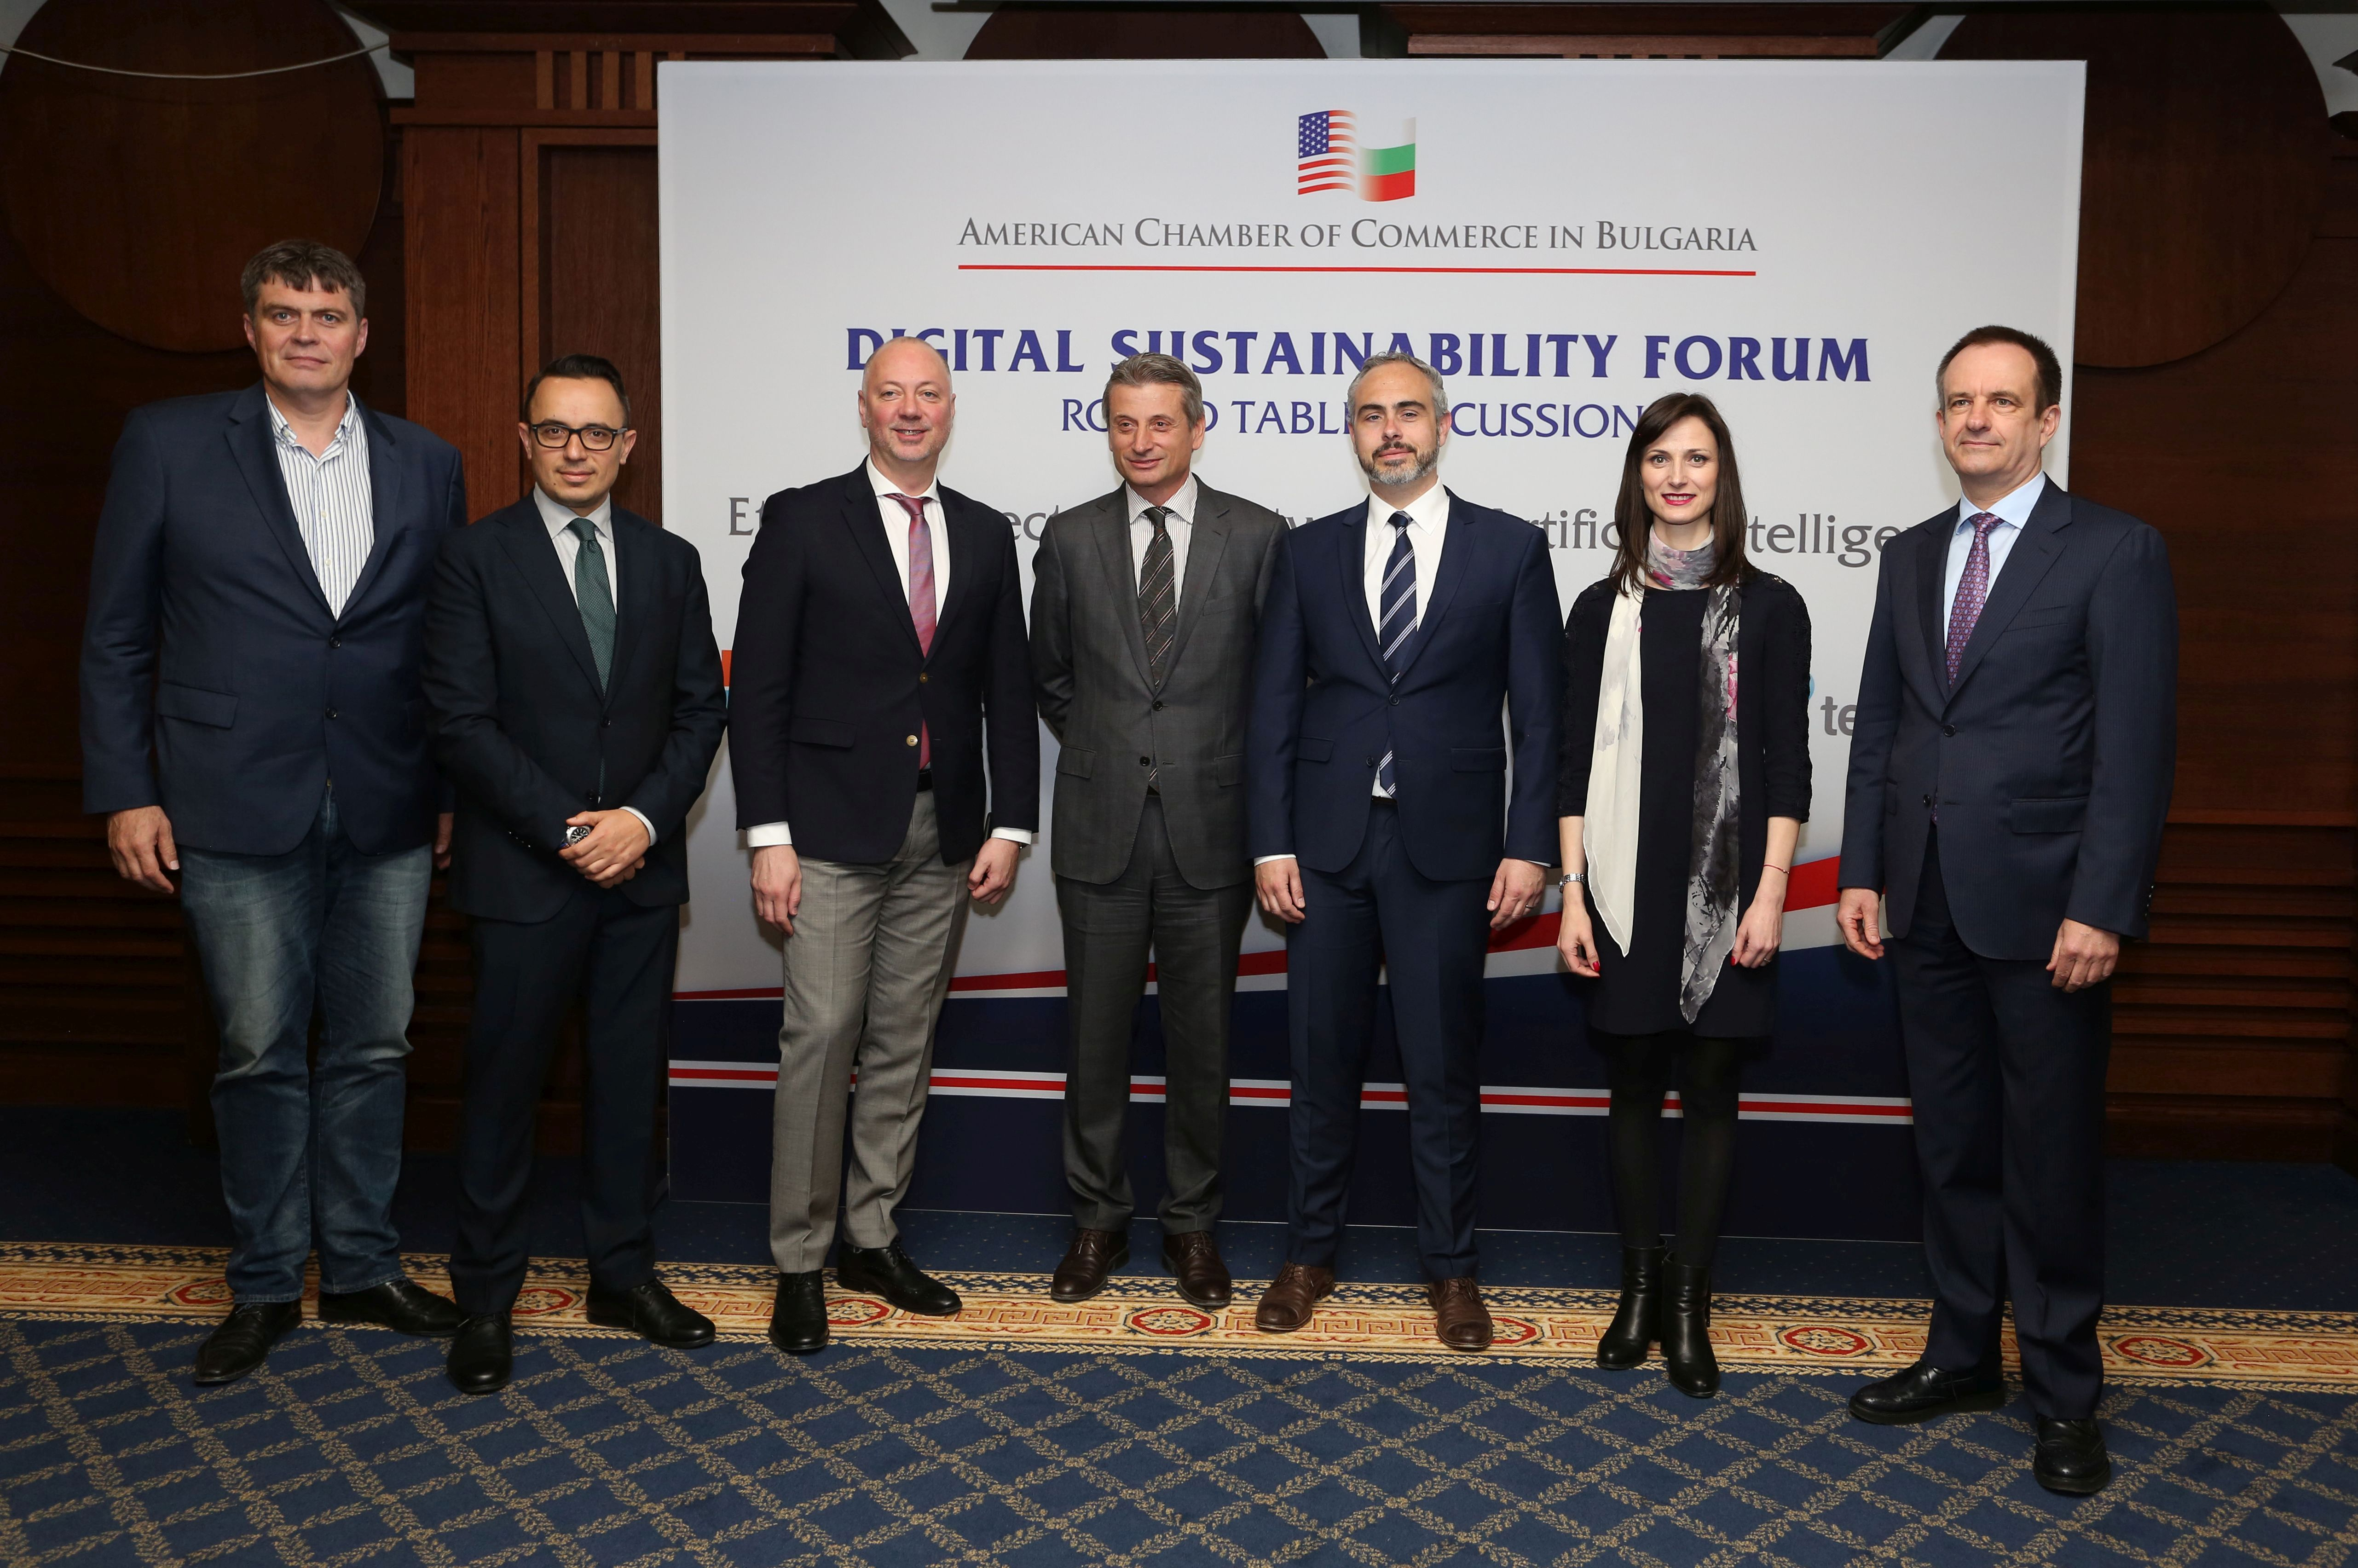 boyanov-co-microsoft-ibm-and-telelink-support-the-digital-sustainability-forum-on-artificial-intelligence